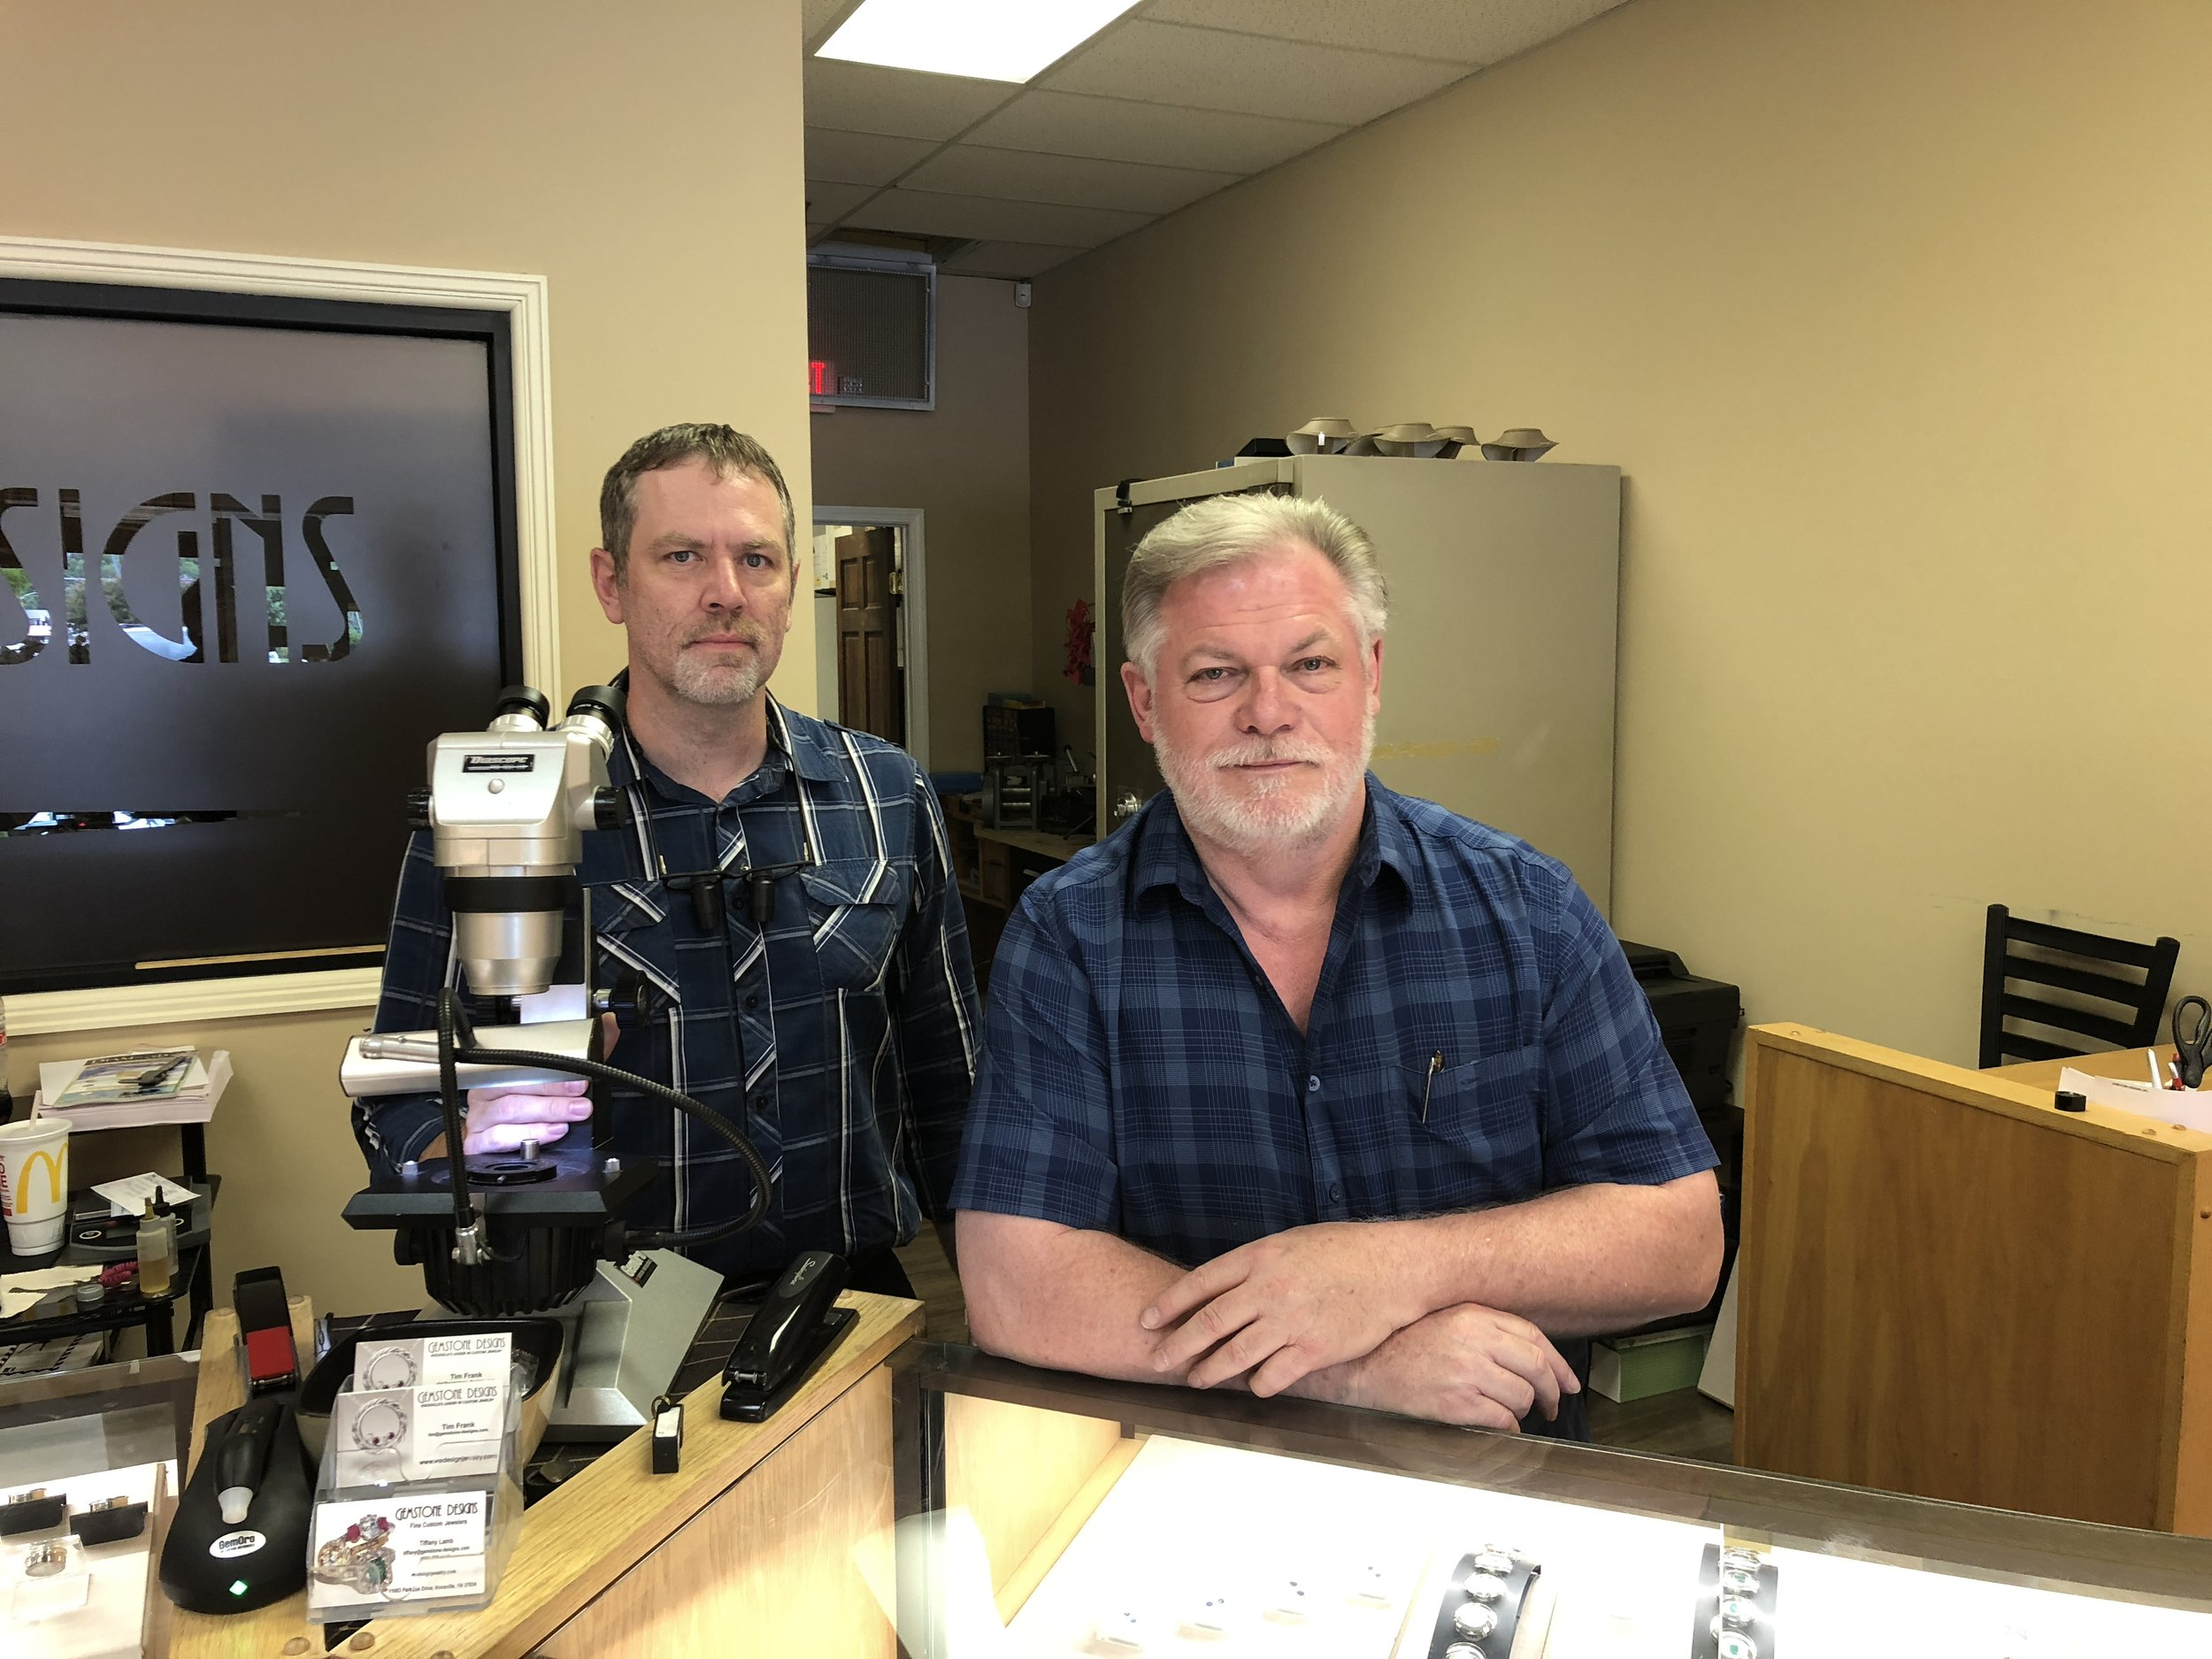 Putting the Top Guy On The Job - Gemstone Designs most prolific and talented CAD designer, Ron Litolff (right), was placed on the job.